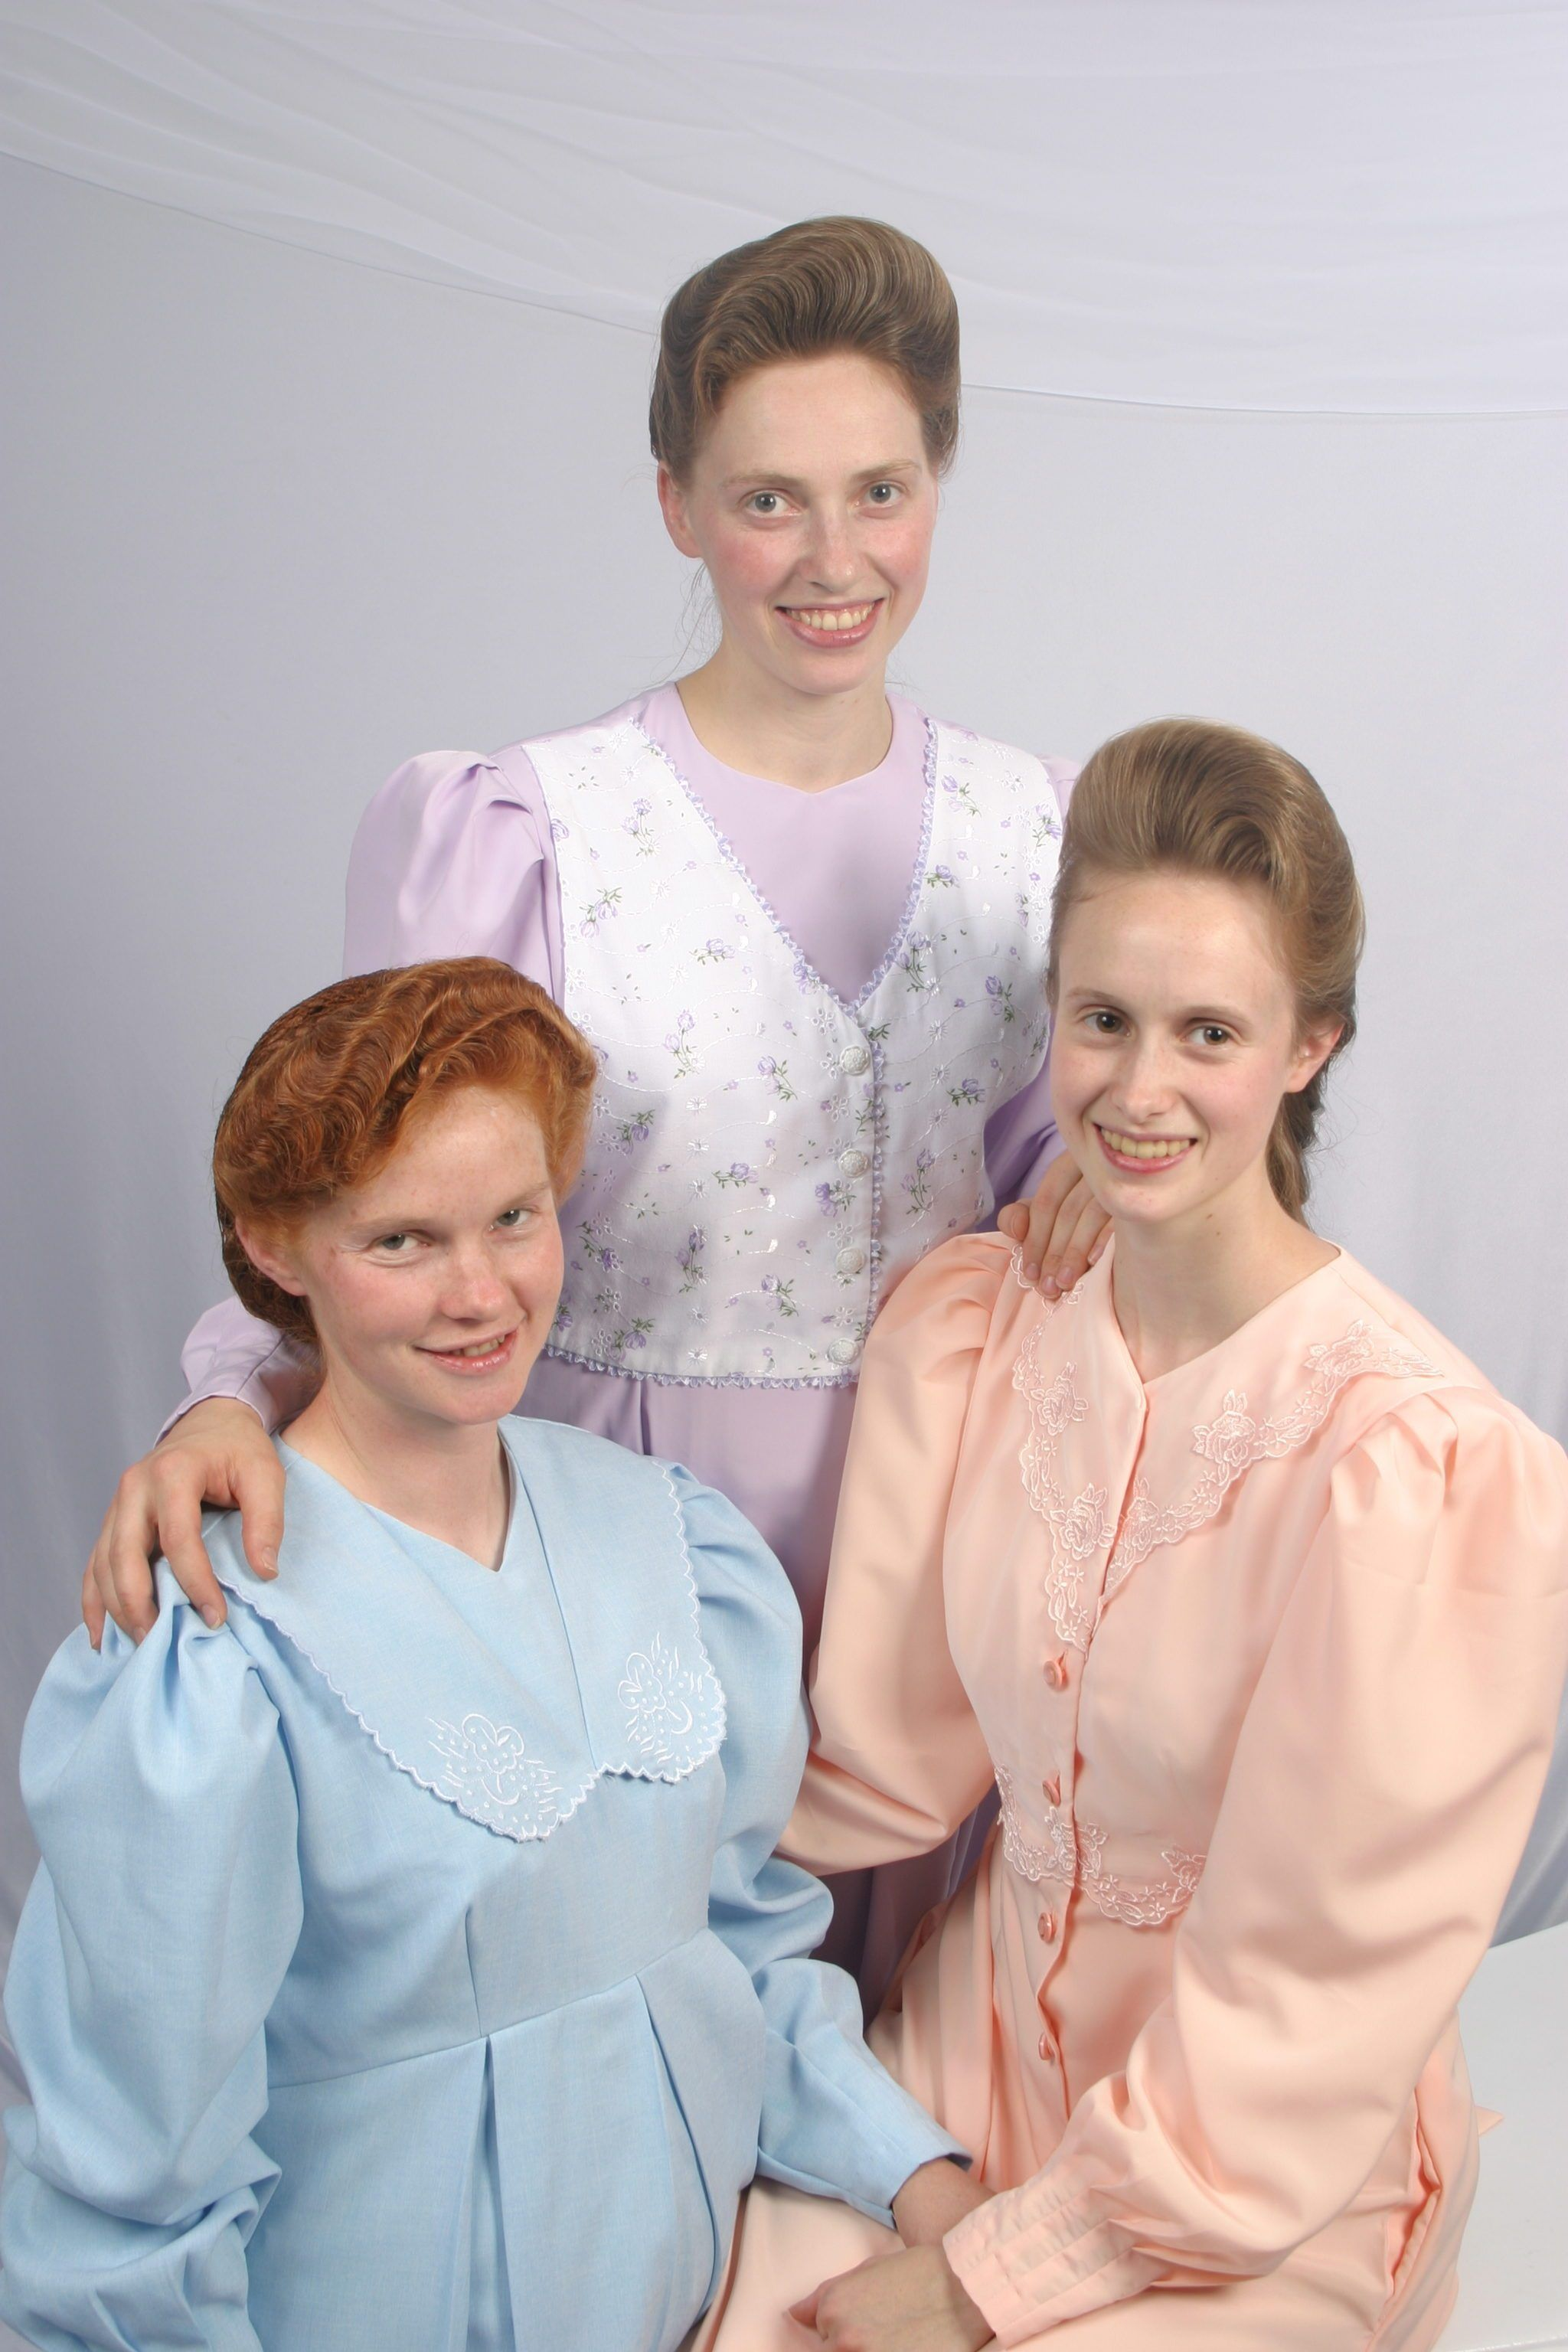 Rachel Jeffs In Peach And Two Of Her Sister Wives Light Purple Is Sarah Allred And Light Blue Is Rebekah Ann Johnson Tak Sister Wives Women Sisters Of Mercy